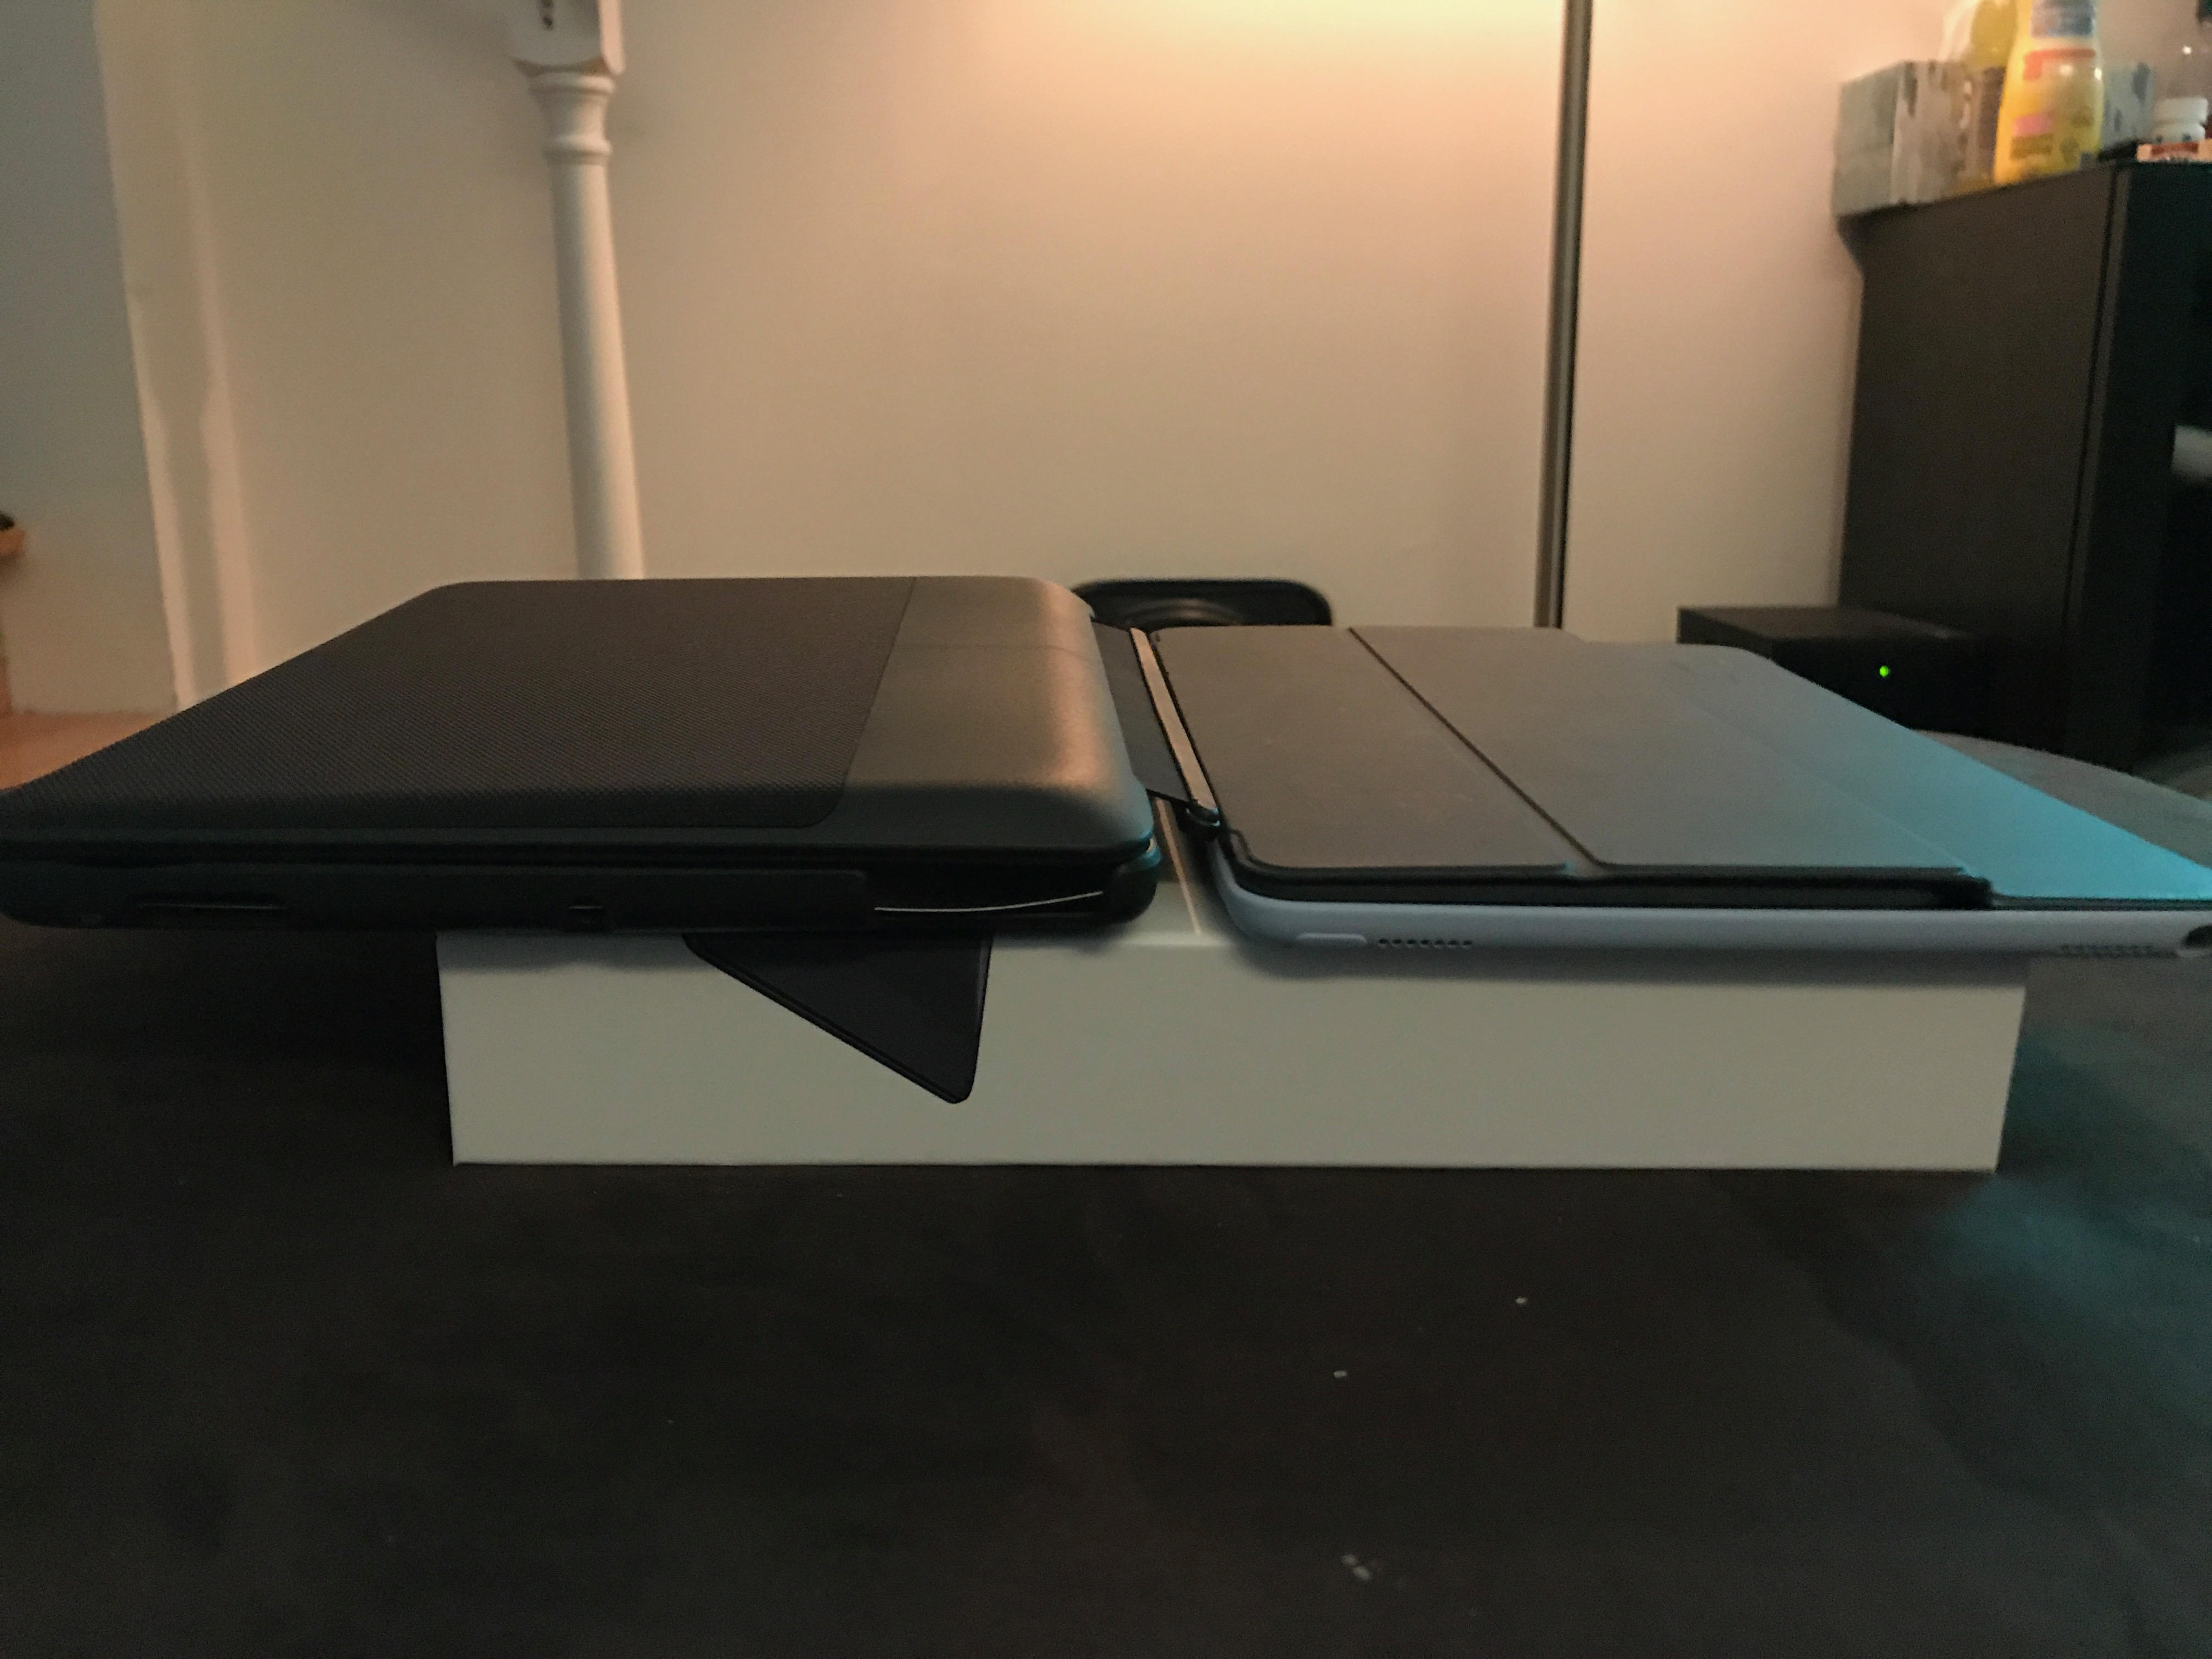 4bd62611ed3 Mine just came in. Photo comparison to my current 9.7 with Apple silicone  case and Smart Keyboard below.